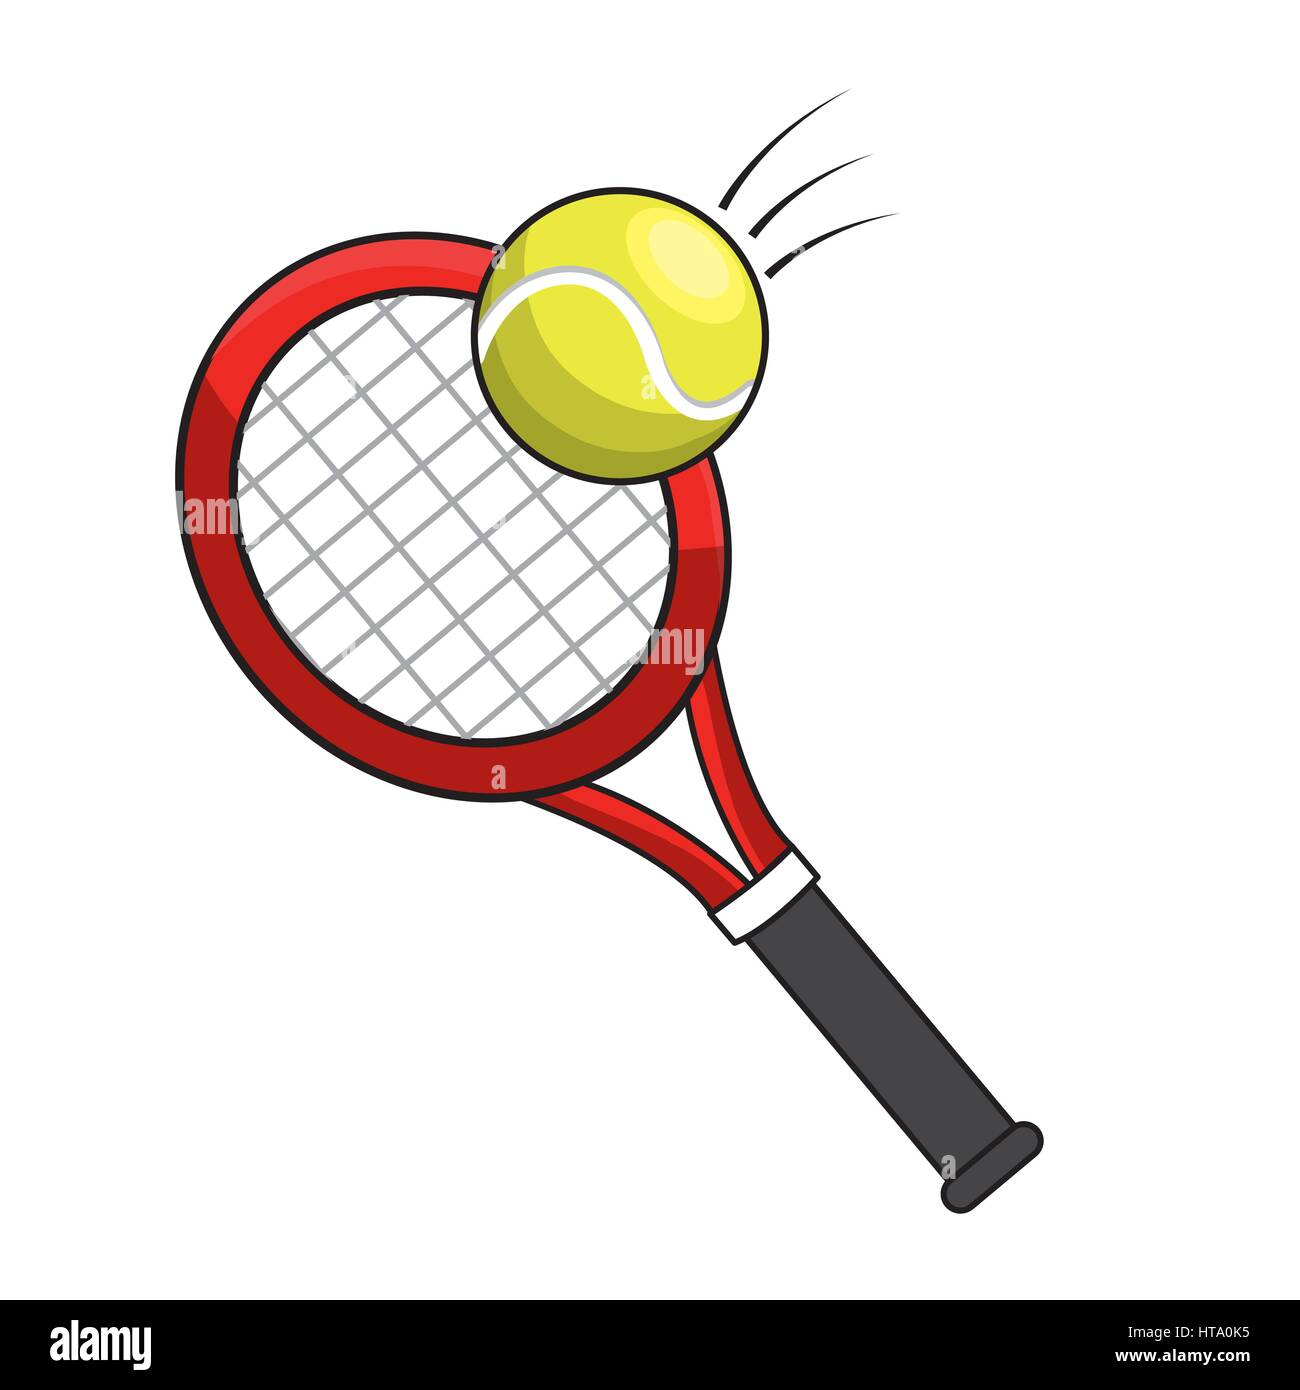 color racket and tennis ball icon stock vector art